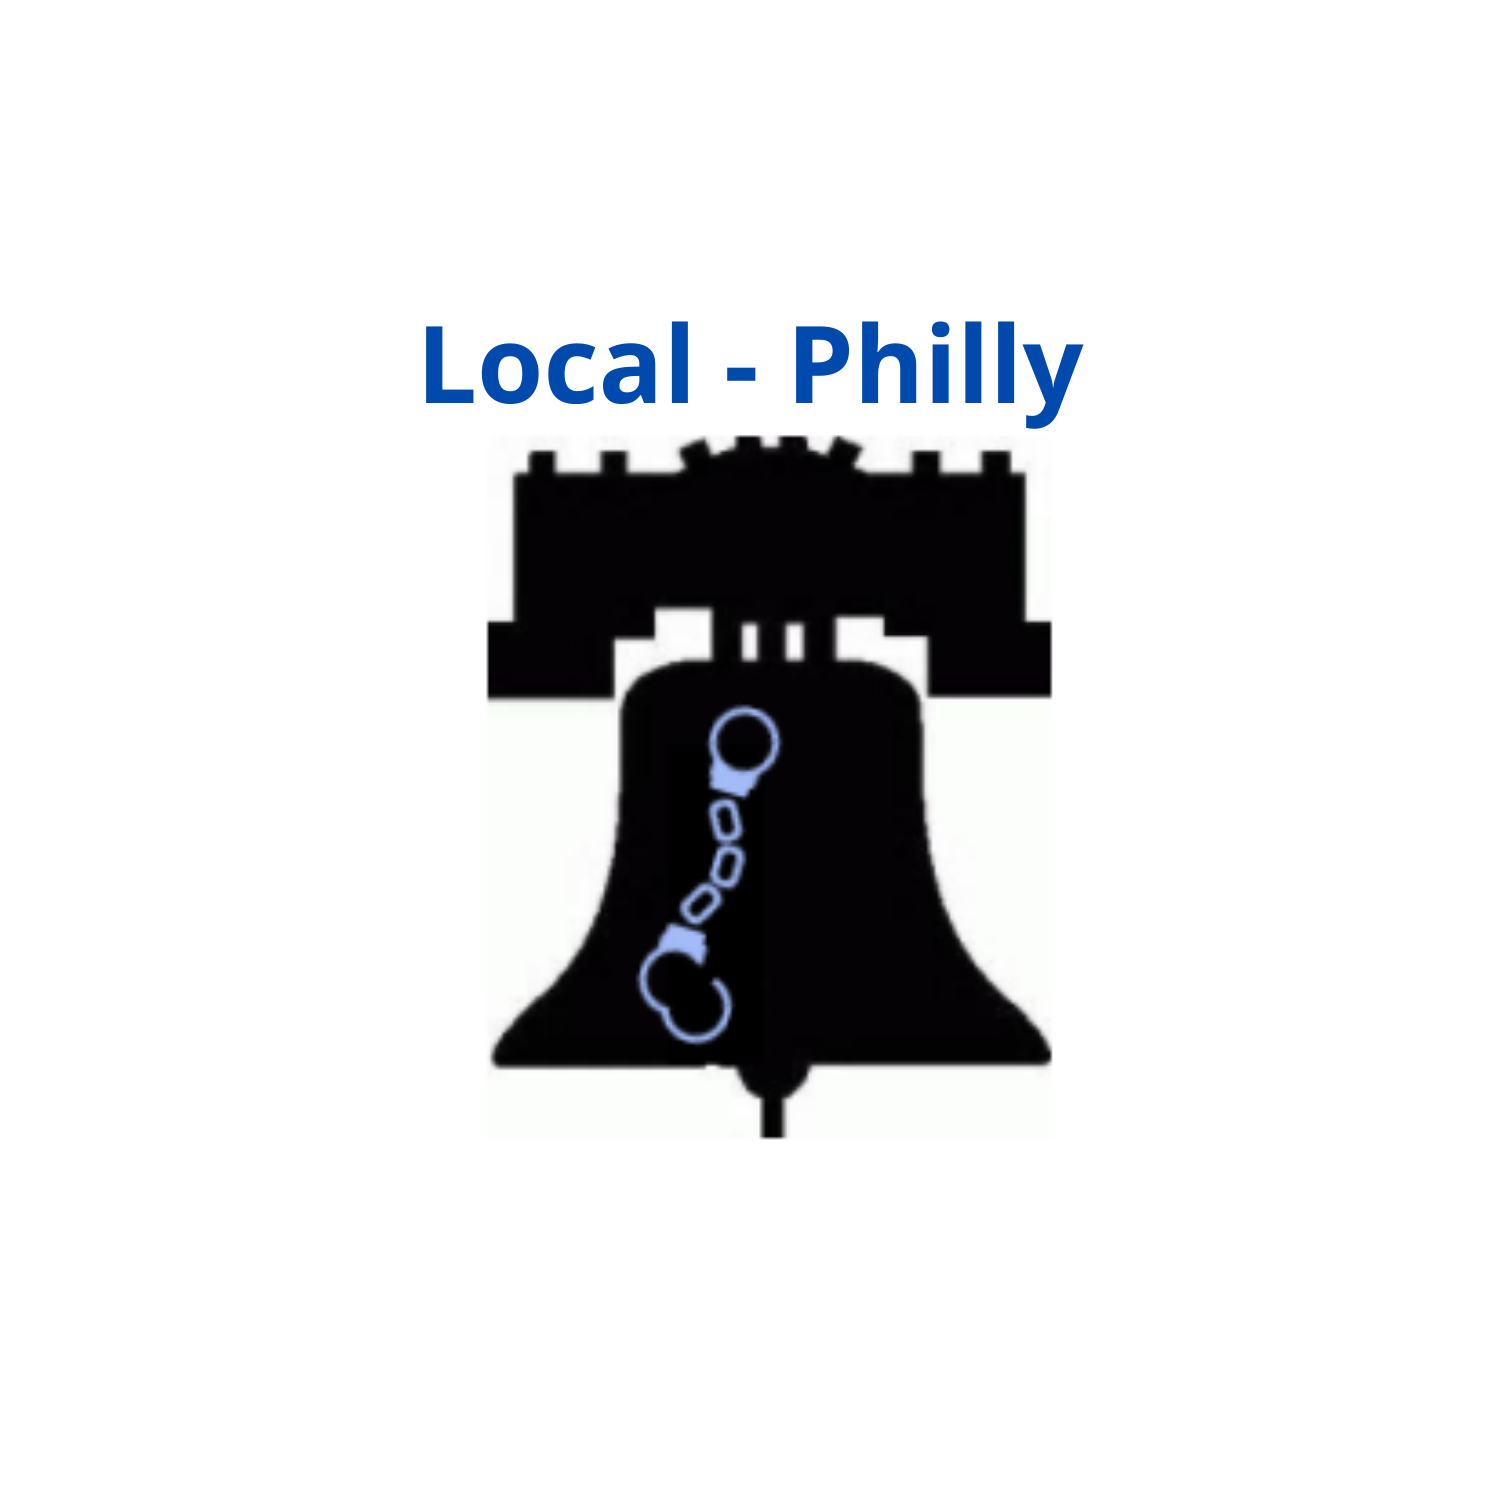 Phila - Liberty Bell Handcuffs (1)